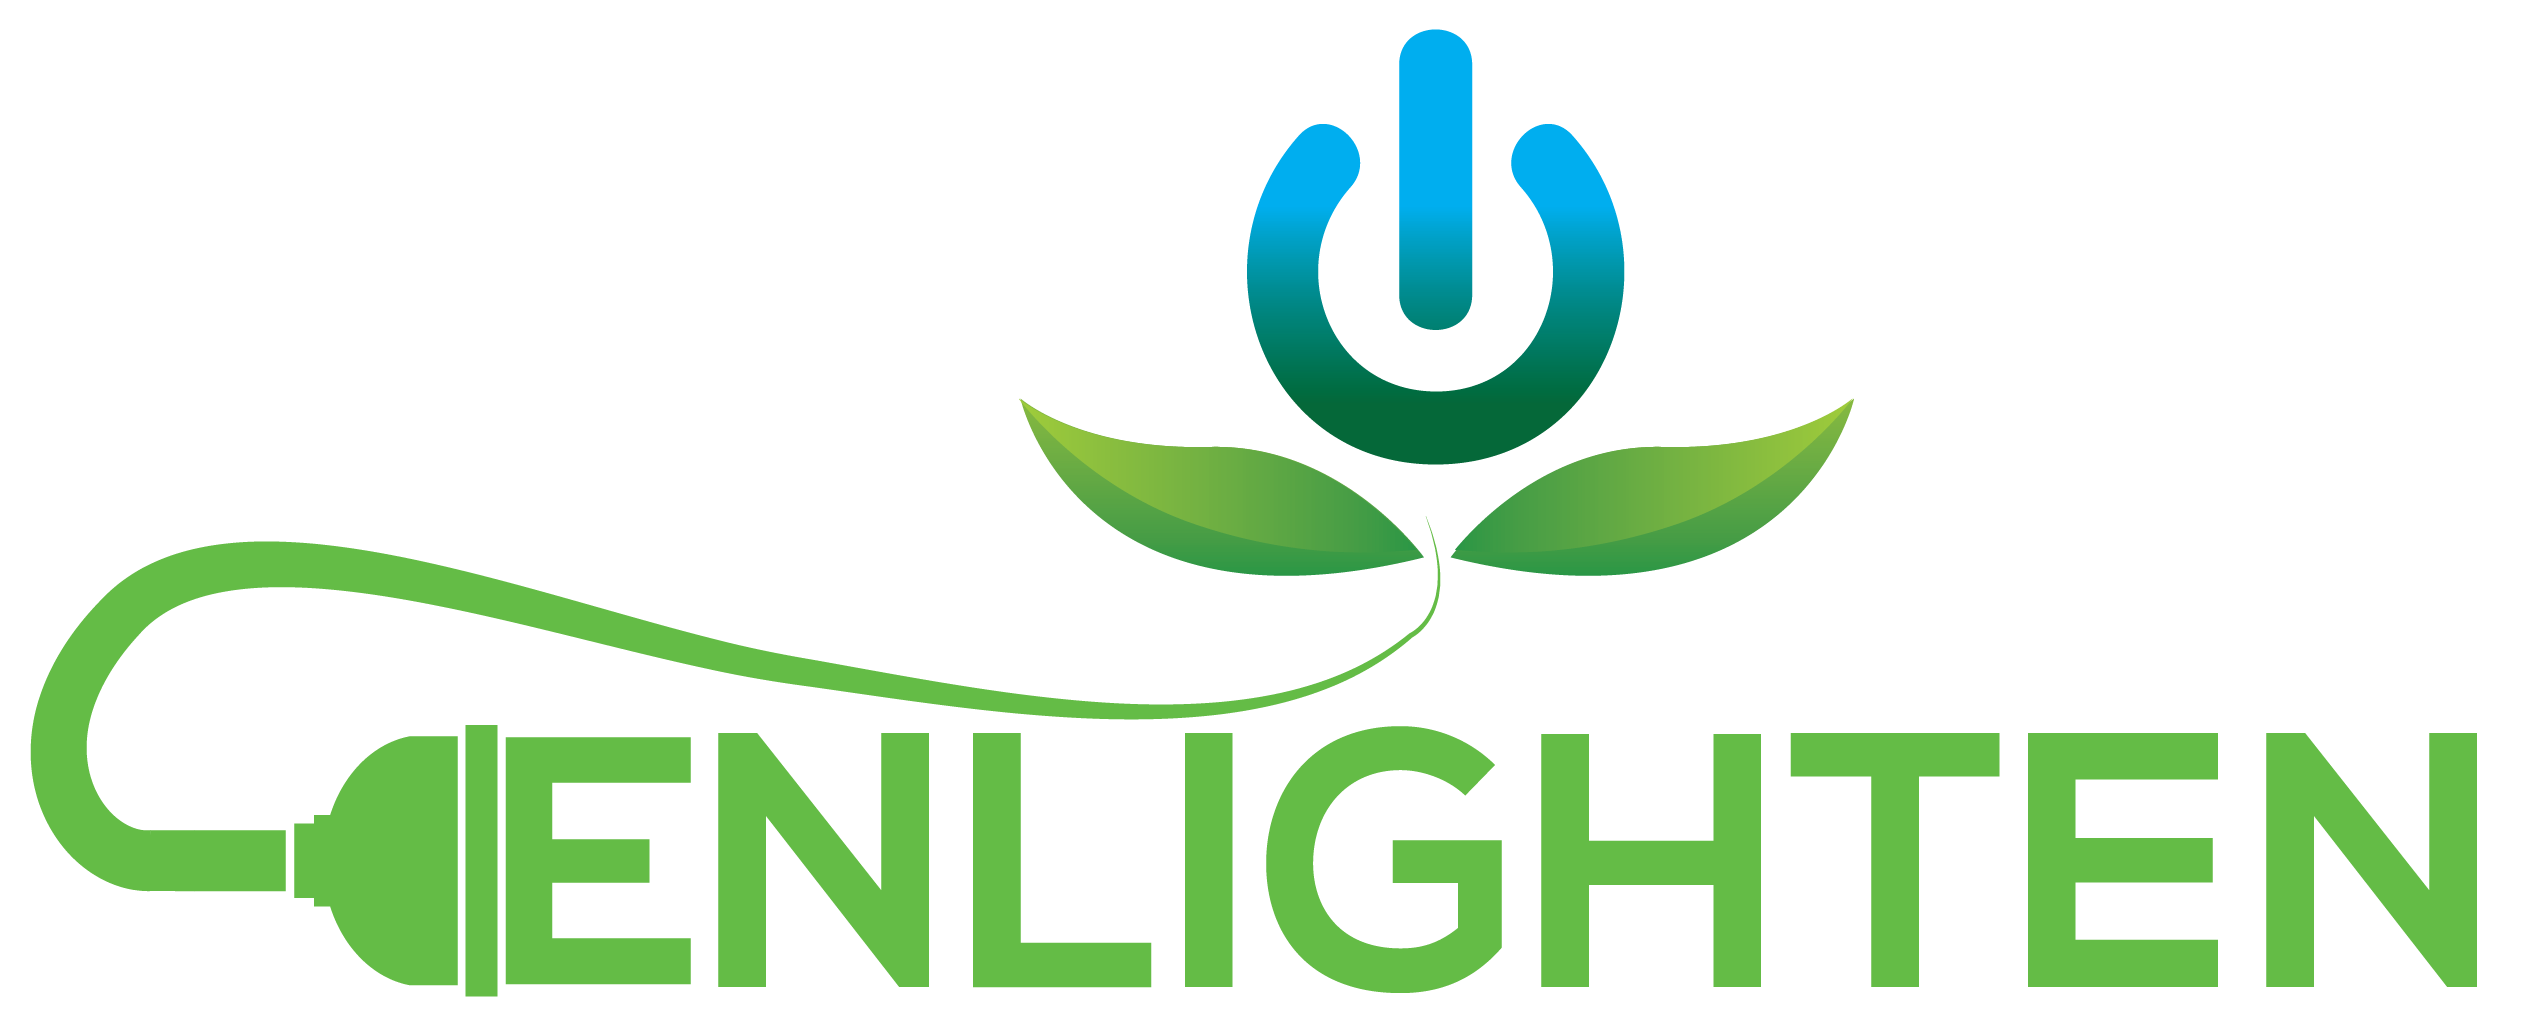 Enlightone: Energy & Water Solutions